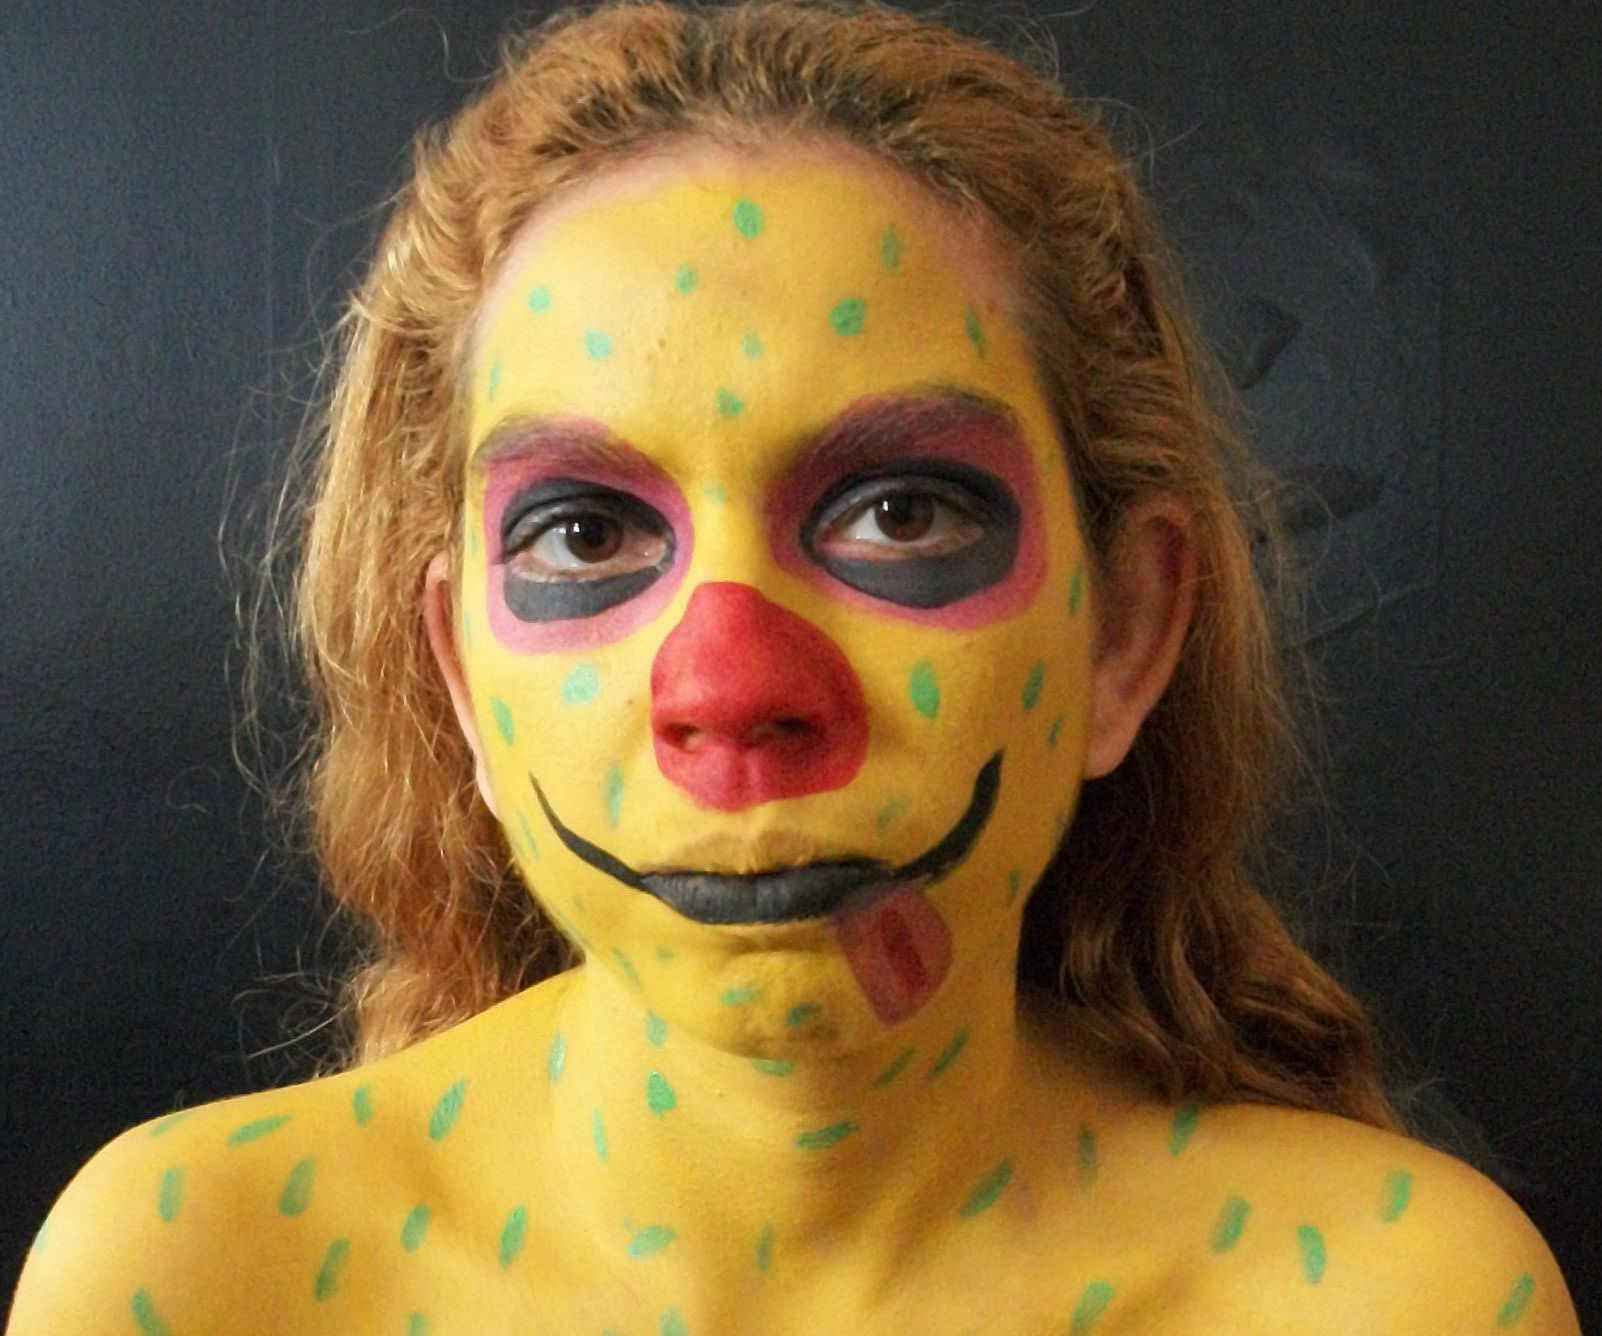 Quirky Face & Body Paint